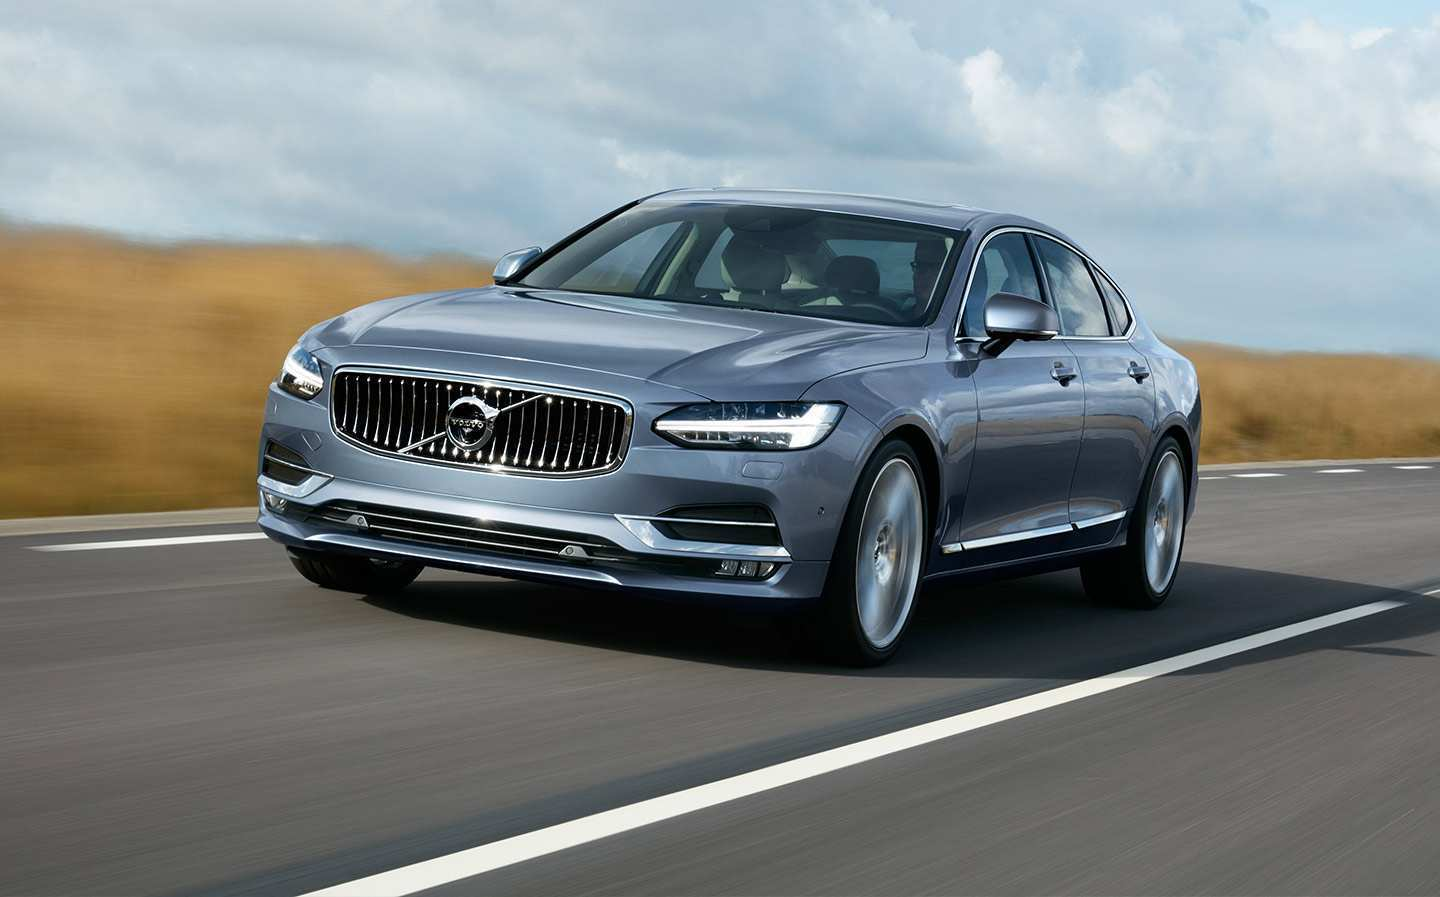 57 New The S90 Volvo 2019 Review Redesign for The S90 Volvo 2019 Review